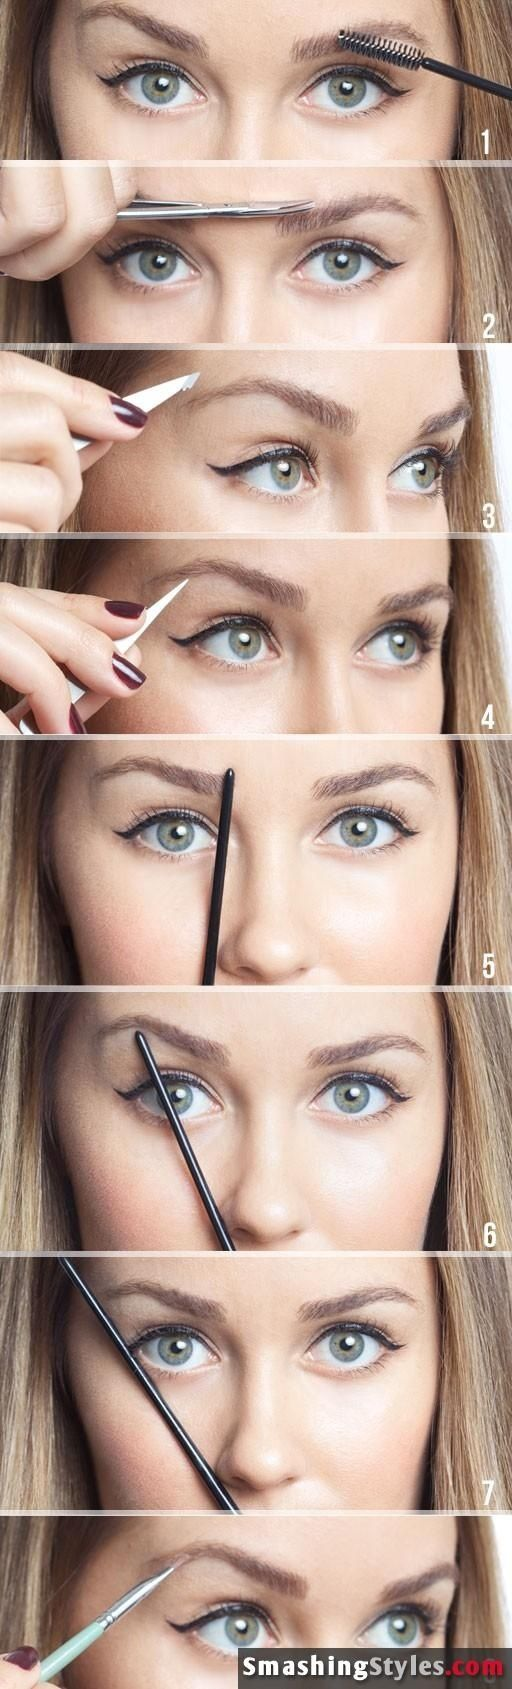 Eye brow trimming---helpful!: